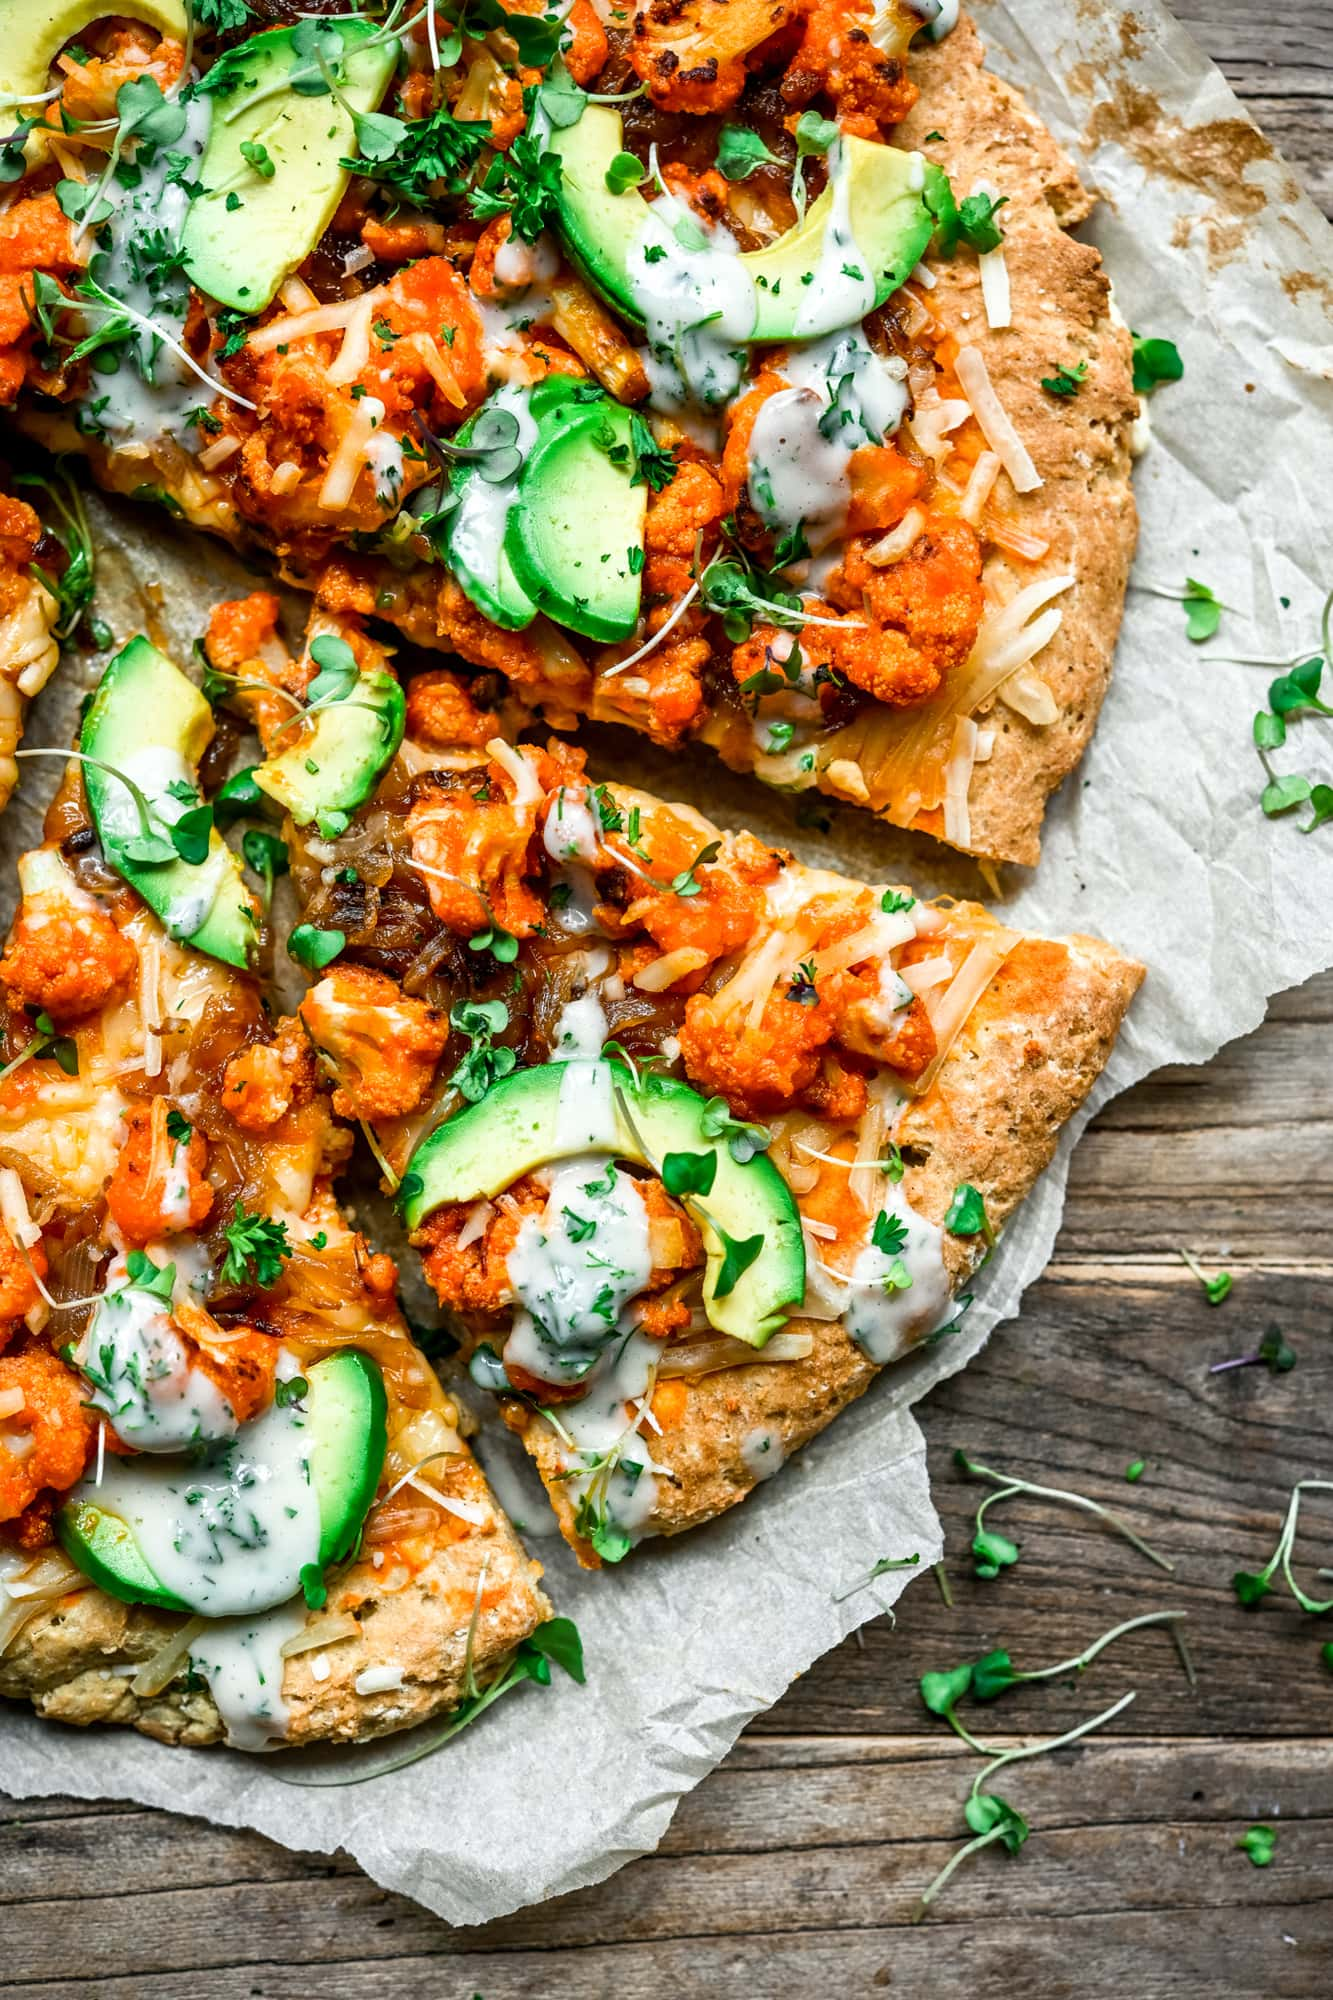 Overhead view of vegan comfort food buffalo cauliflower pizza with avocado slices and ranch drizzle on parchment paper